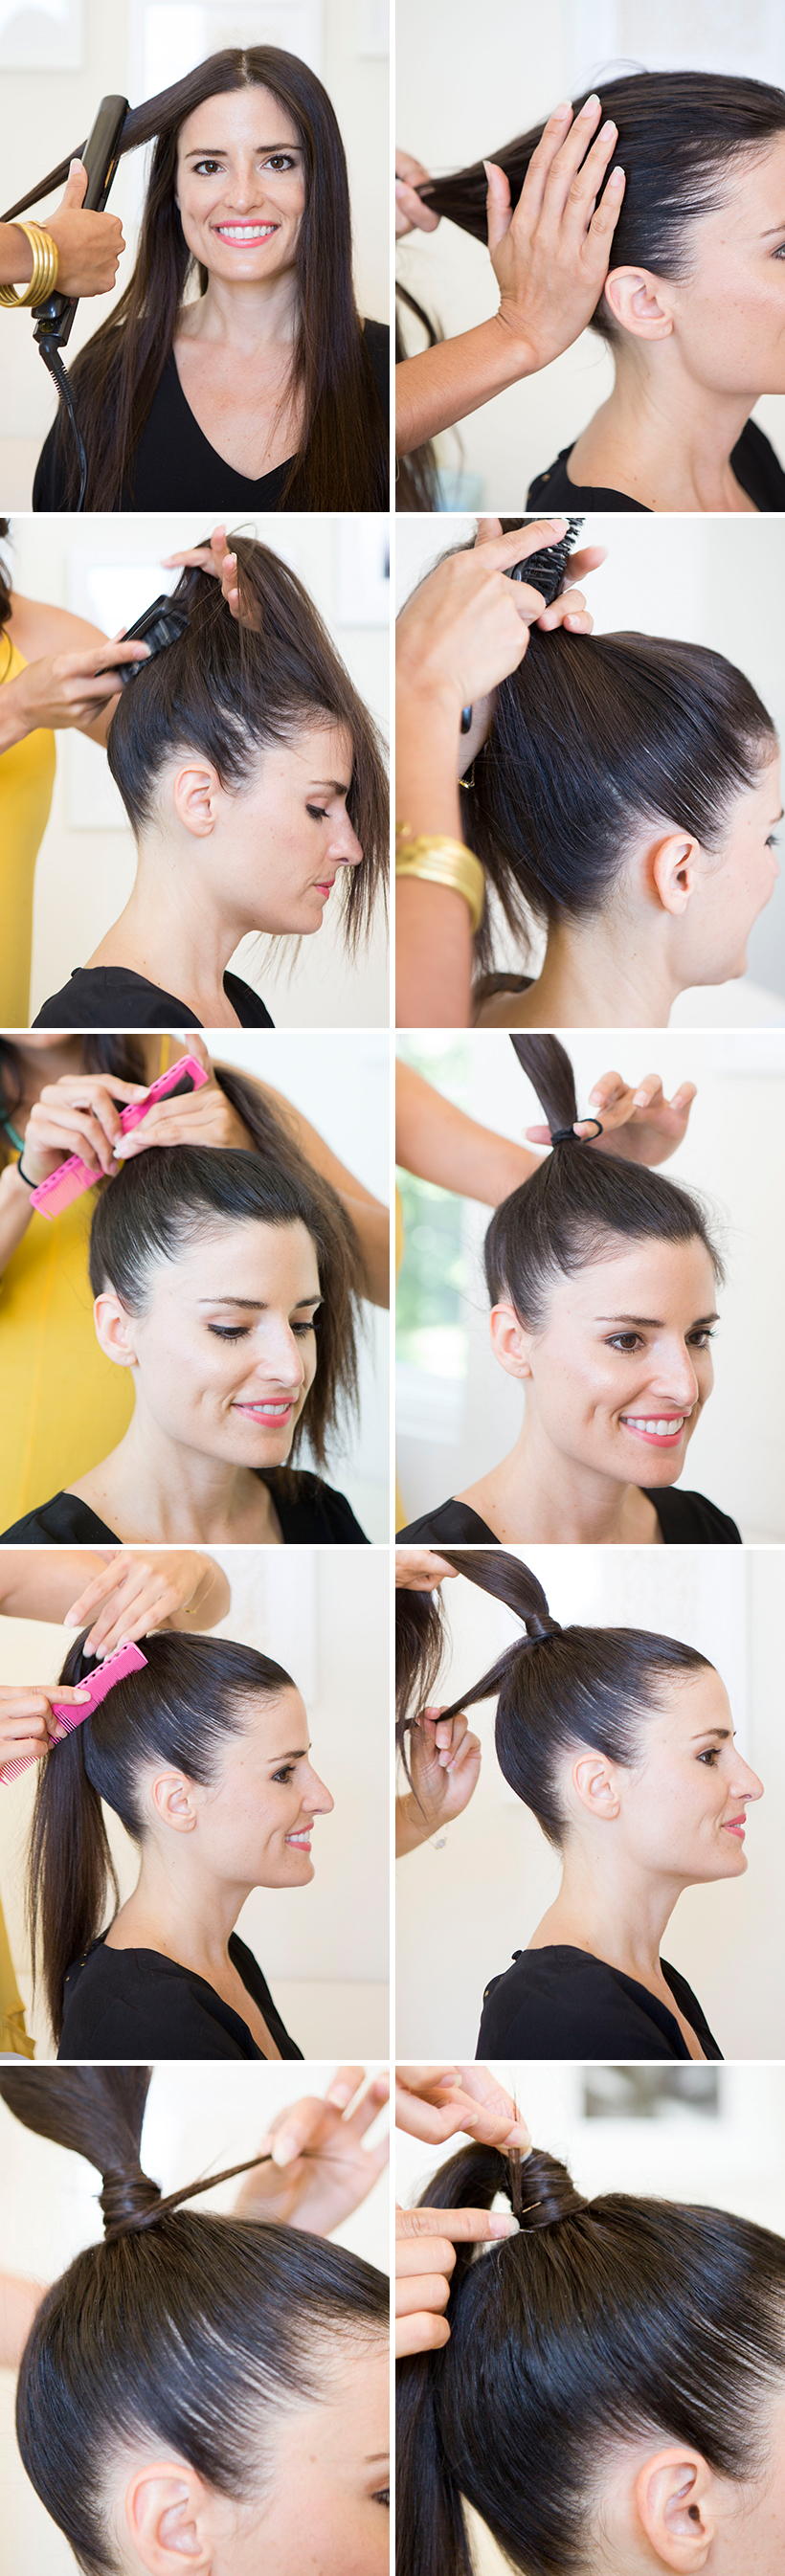 How To Get A Runway Perfect Slicked Back Pony Camille Styles